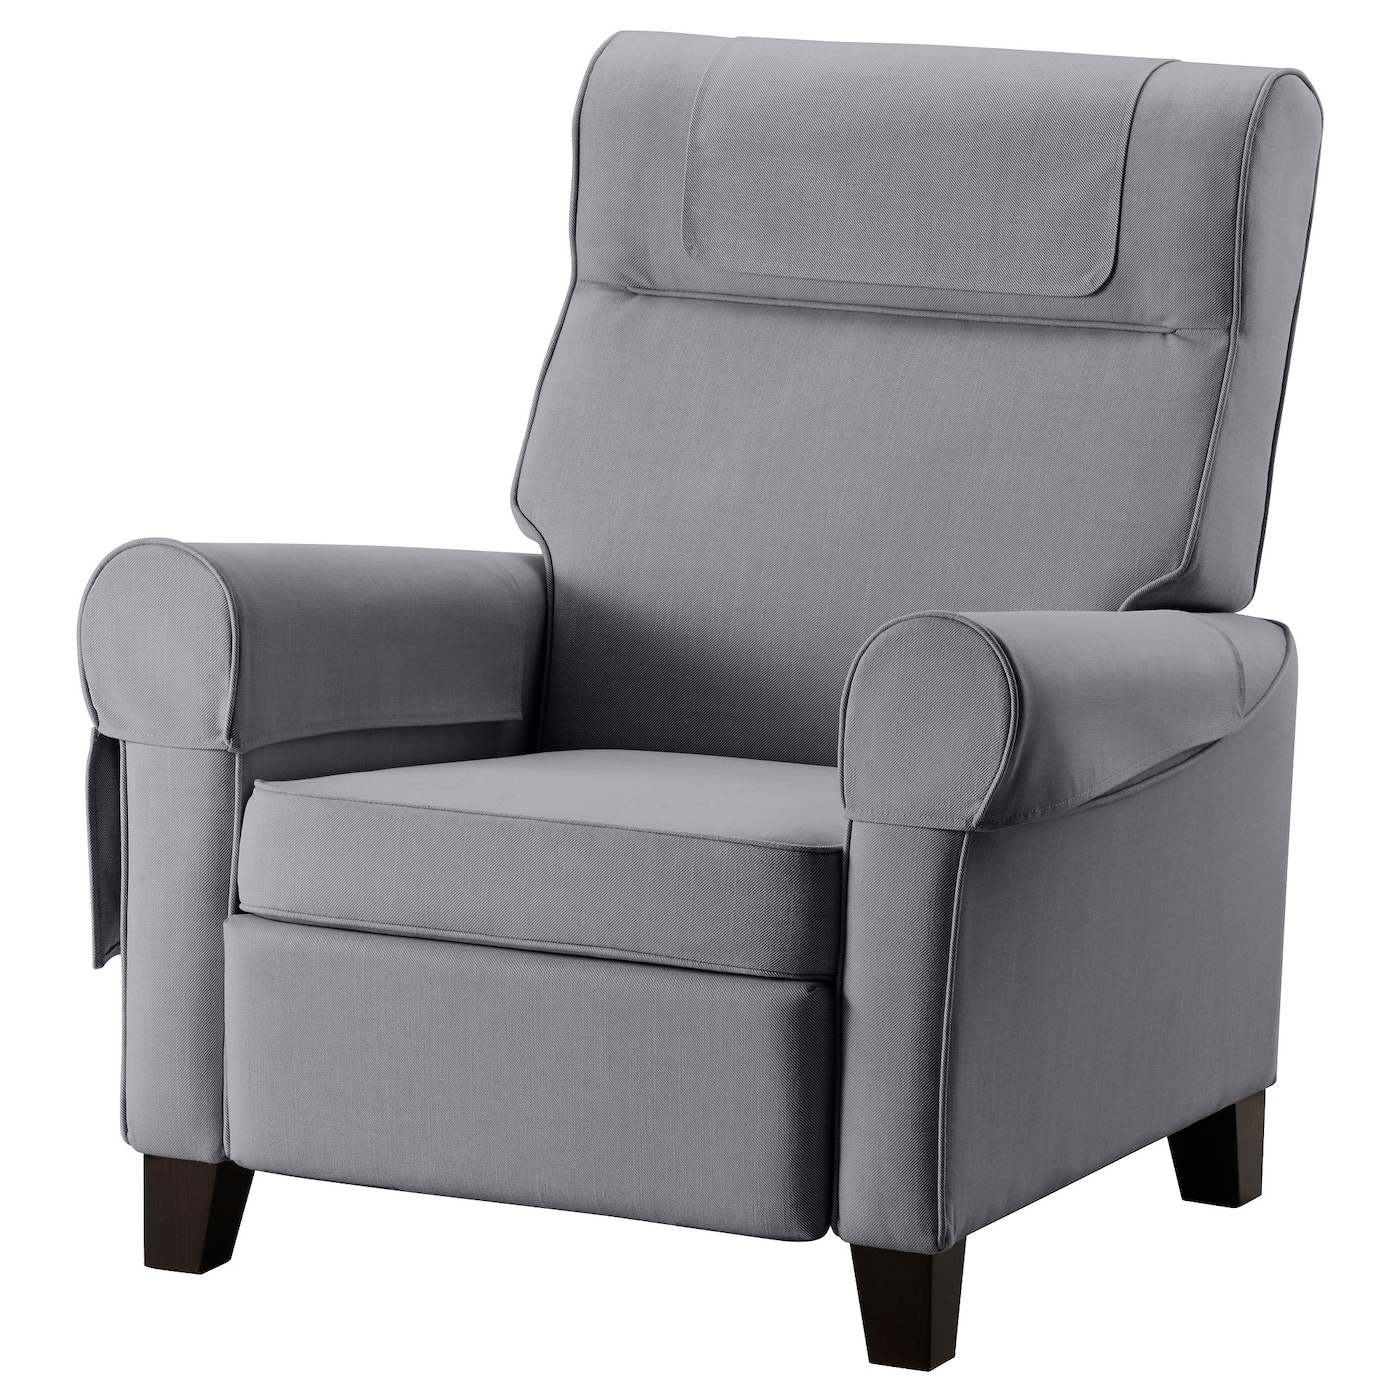 tilt chair espresso recliner rise ireland cs panama supreme electric dfs